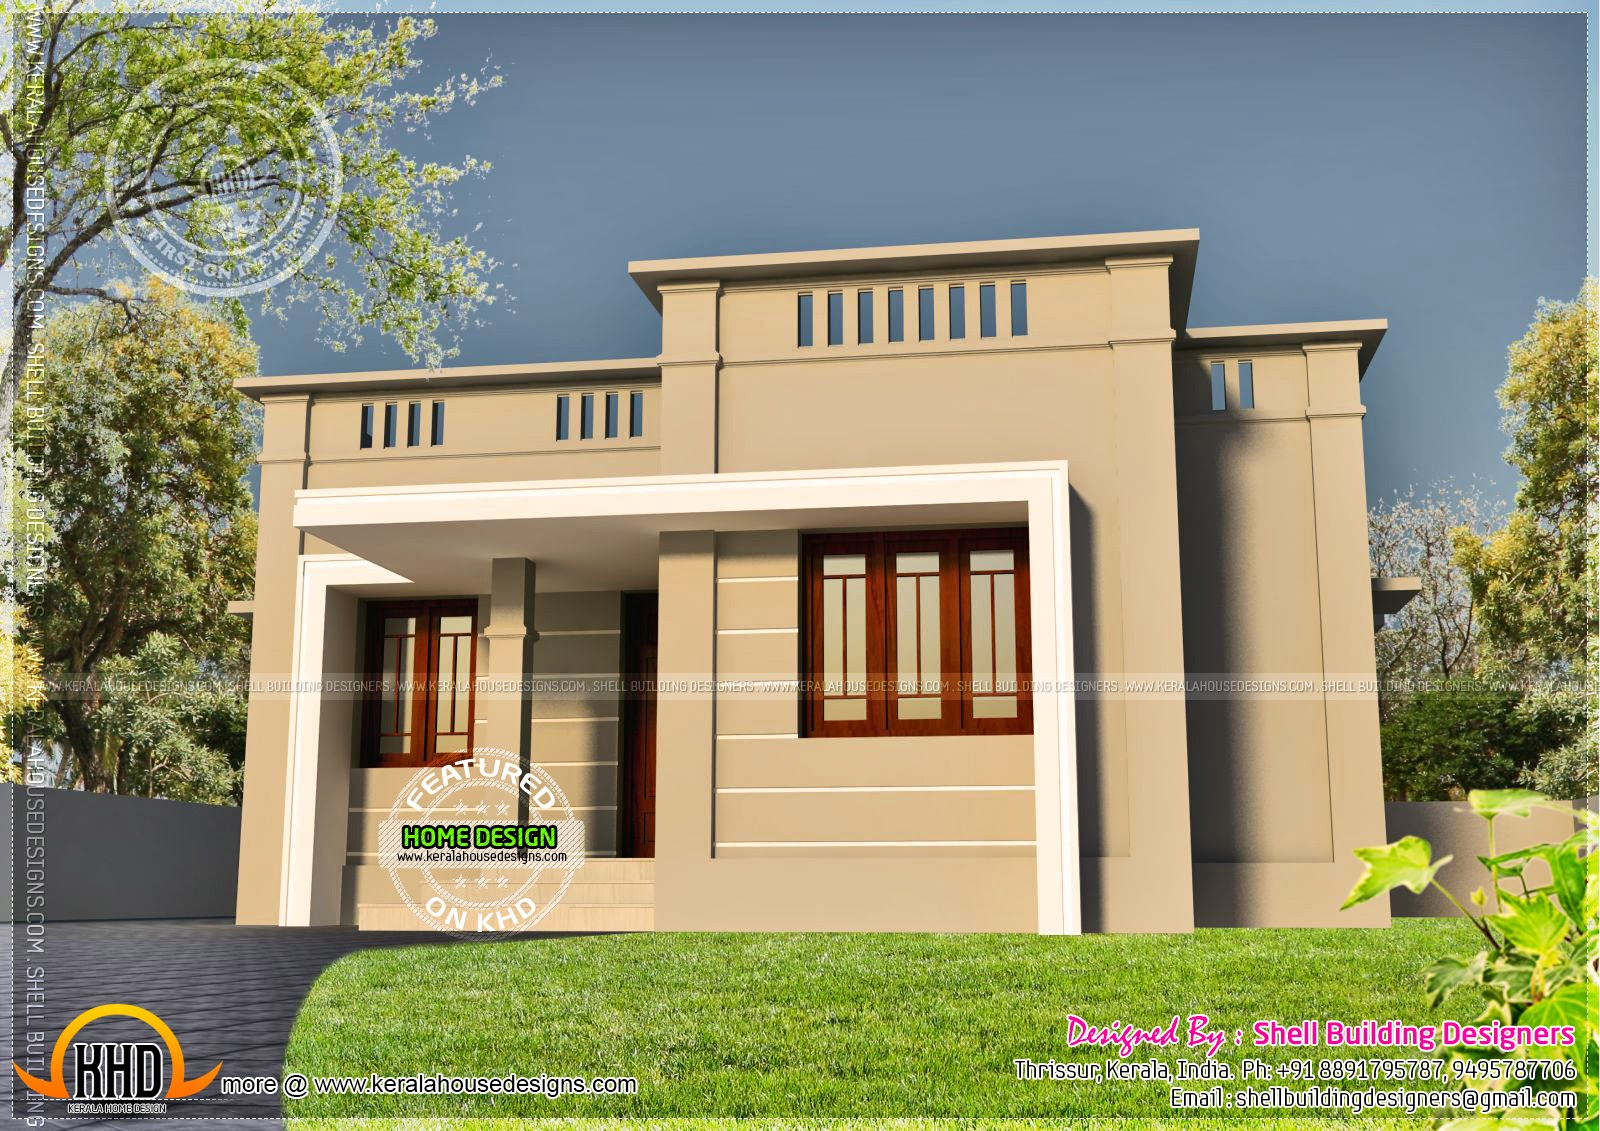 Very small house exterior kerala home design and floor plans for South indian small house designs